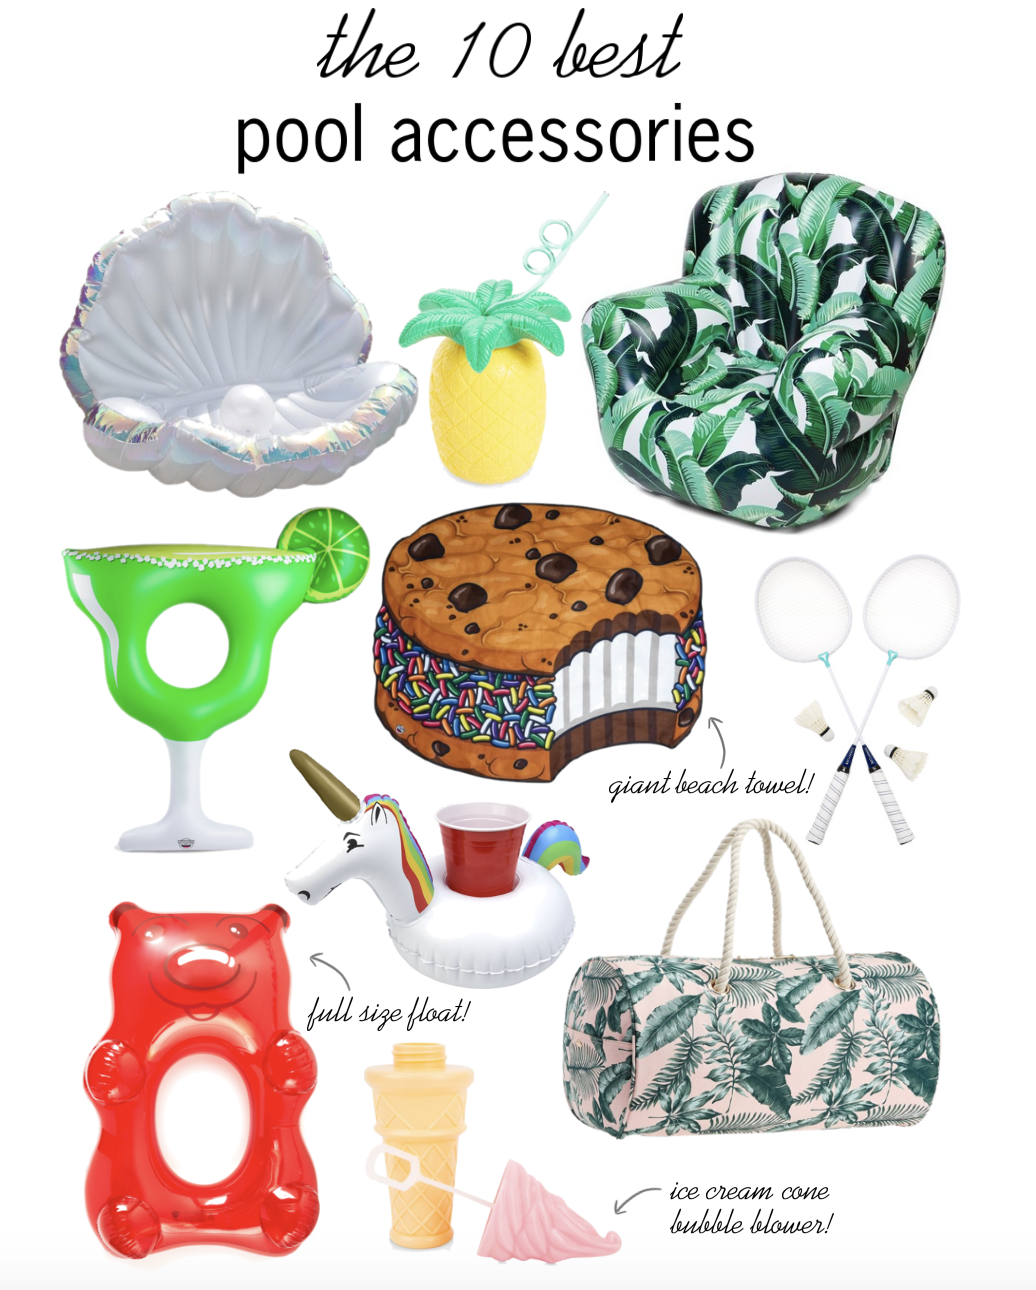 the 10 best pool accessories